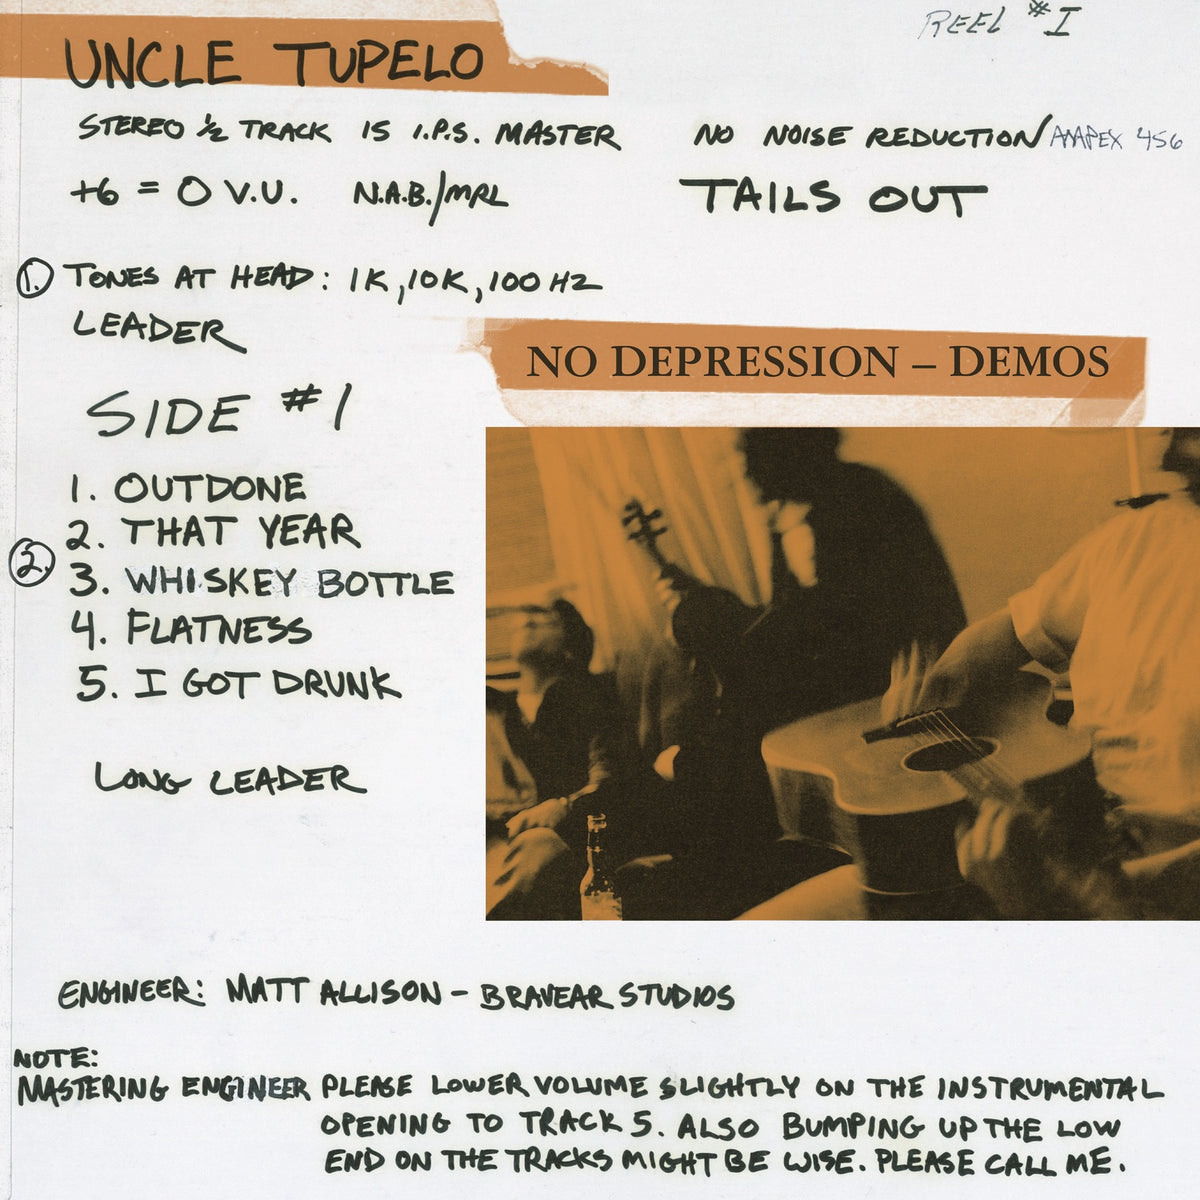 Uncle Tupelo: No Depression - Rarities Vinyl LP (Record Store Day)